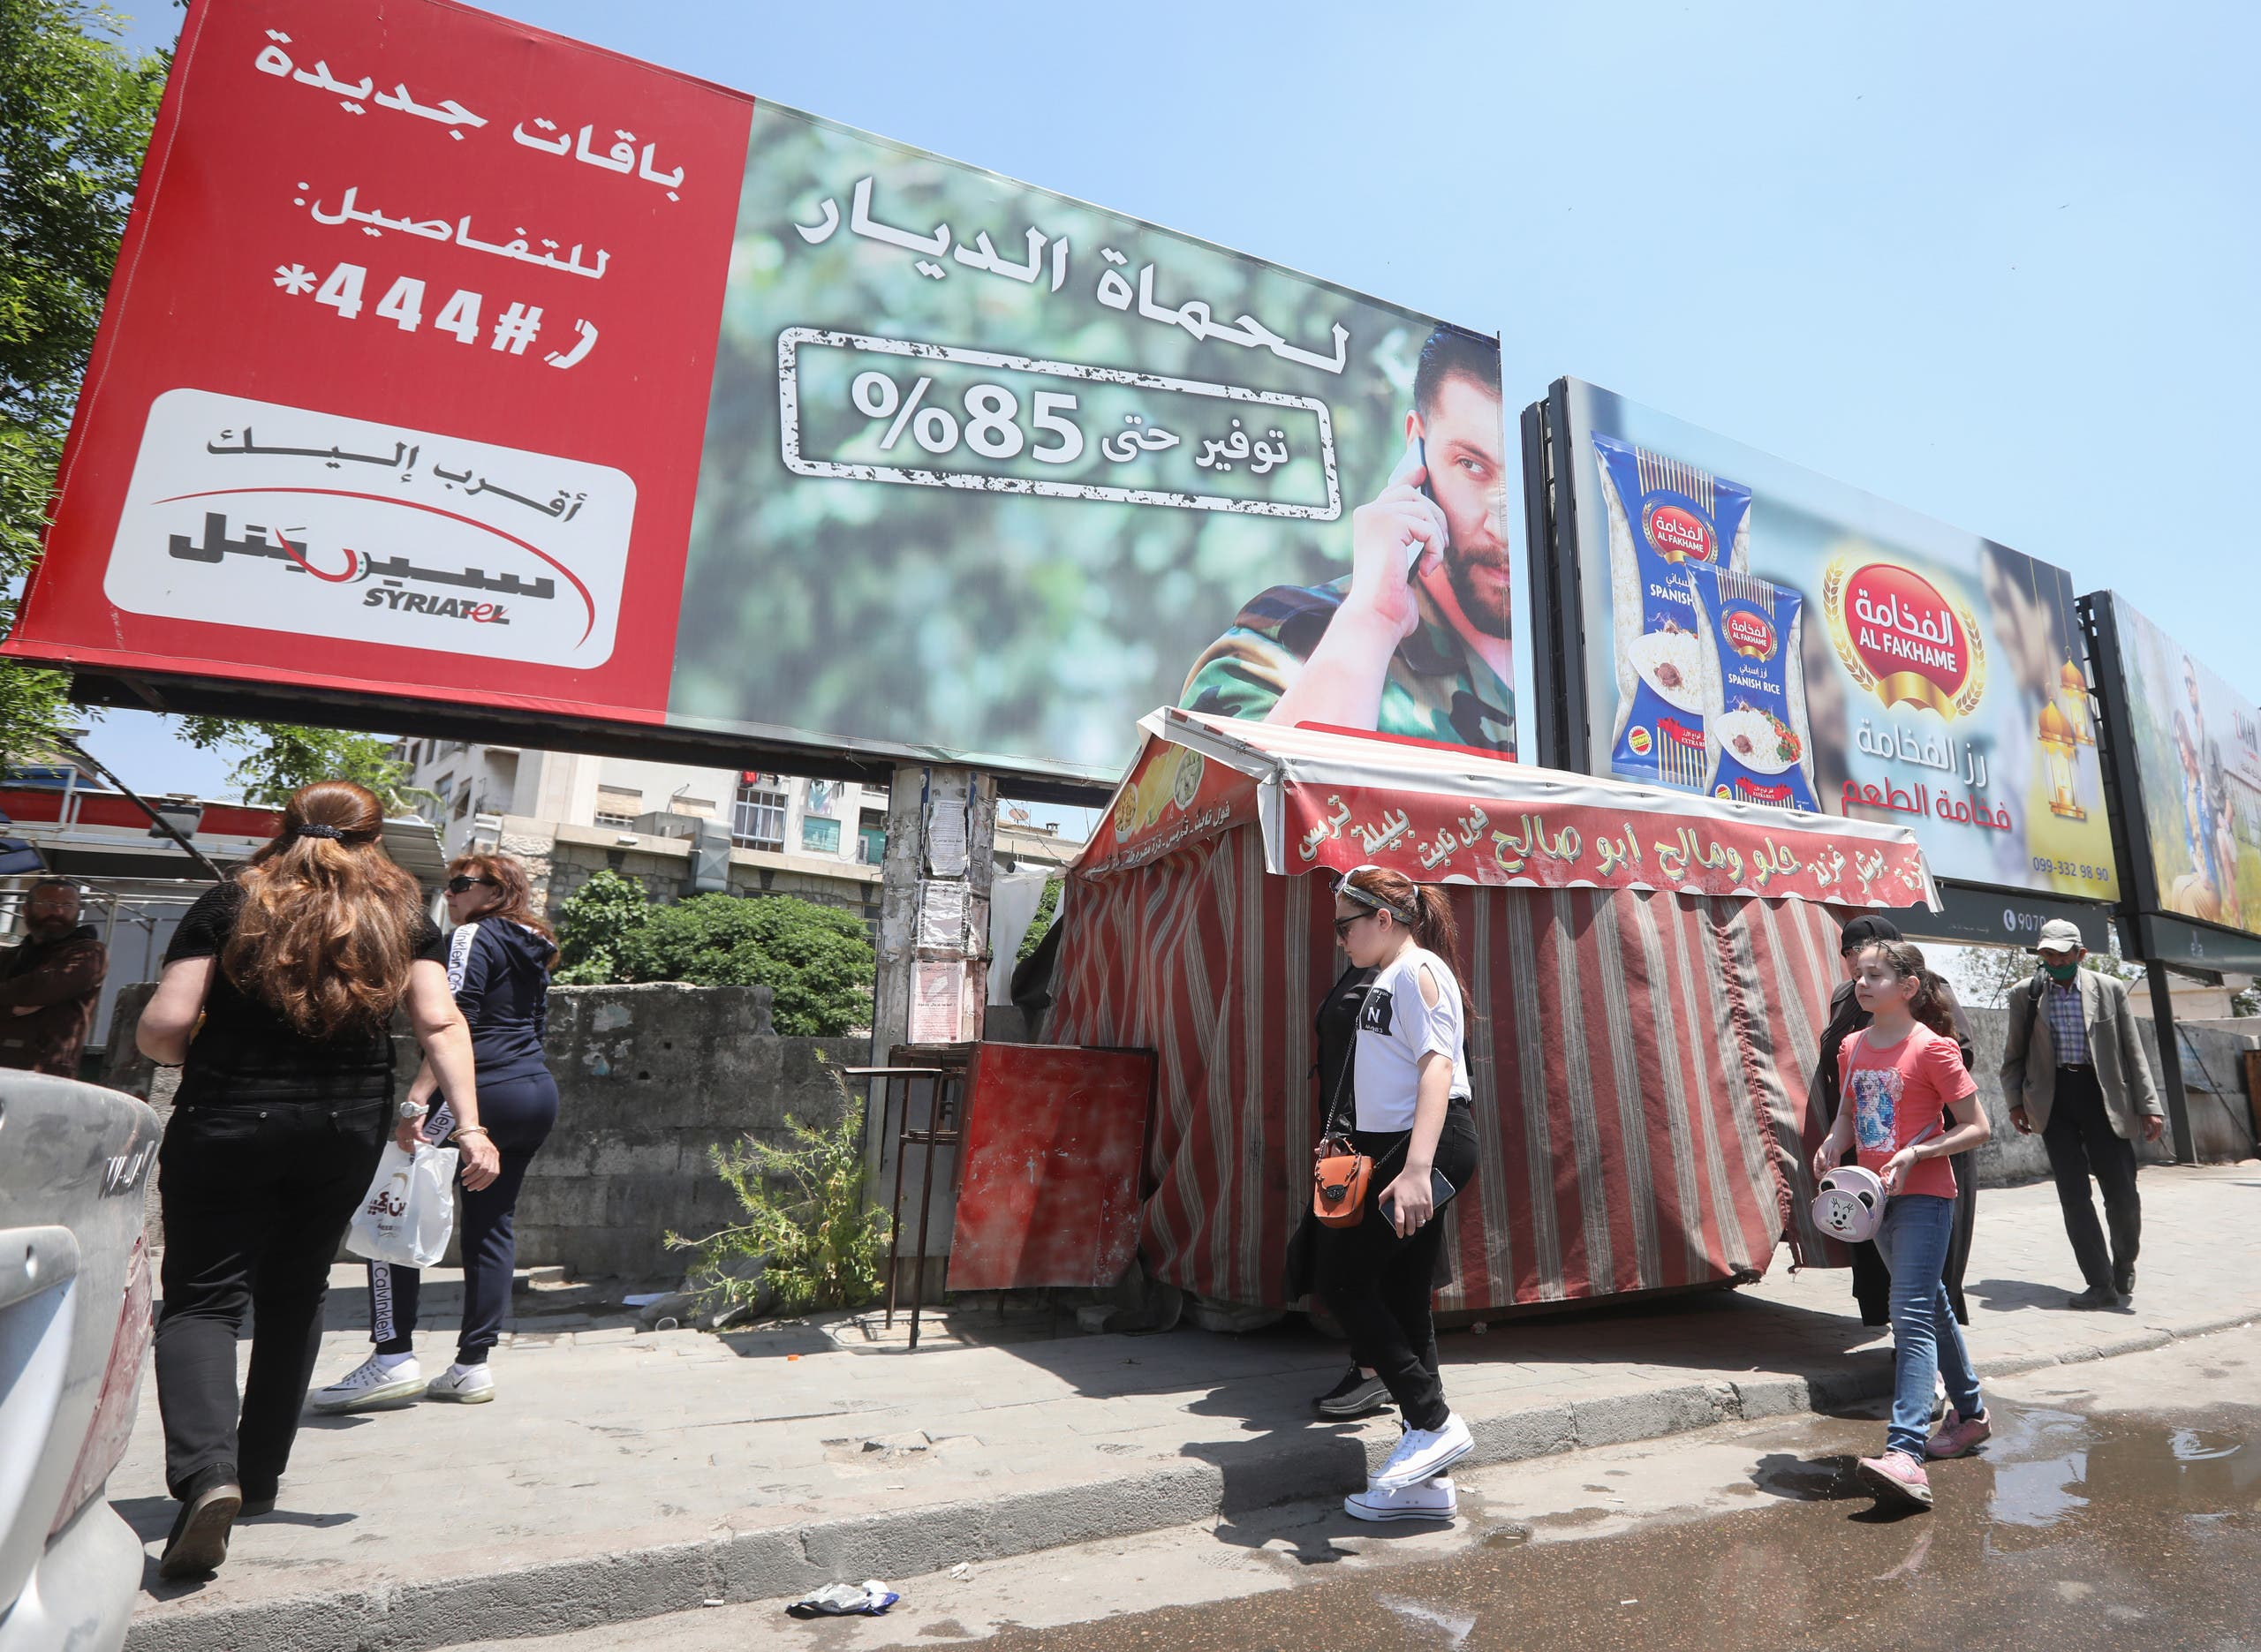 People walk underneath an advertising billboard of Syria's largest mobile operator Syriatel, owned by businessman Rami Makhlouf, in the Syrian capital Damascus on May 11, 2020. (Reuters)